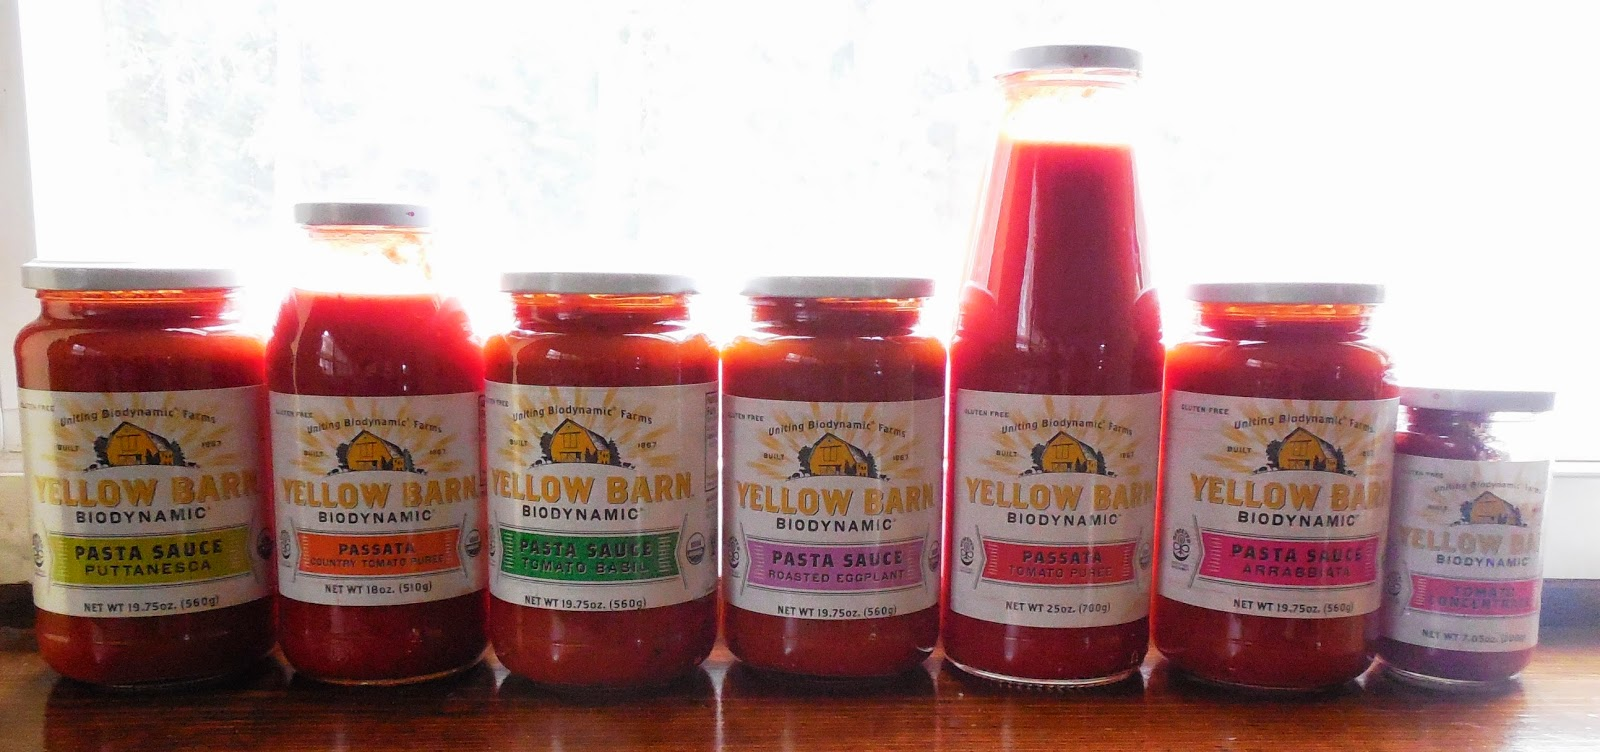 Yellow Barn Biodynamic Pasta Sauce